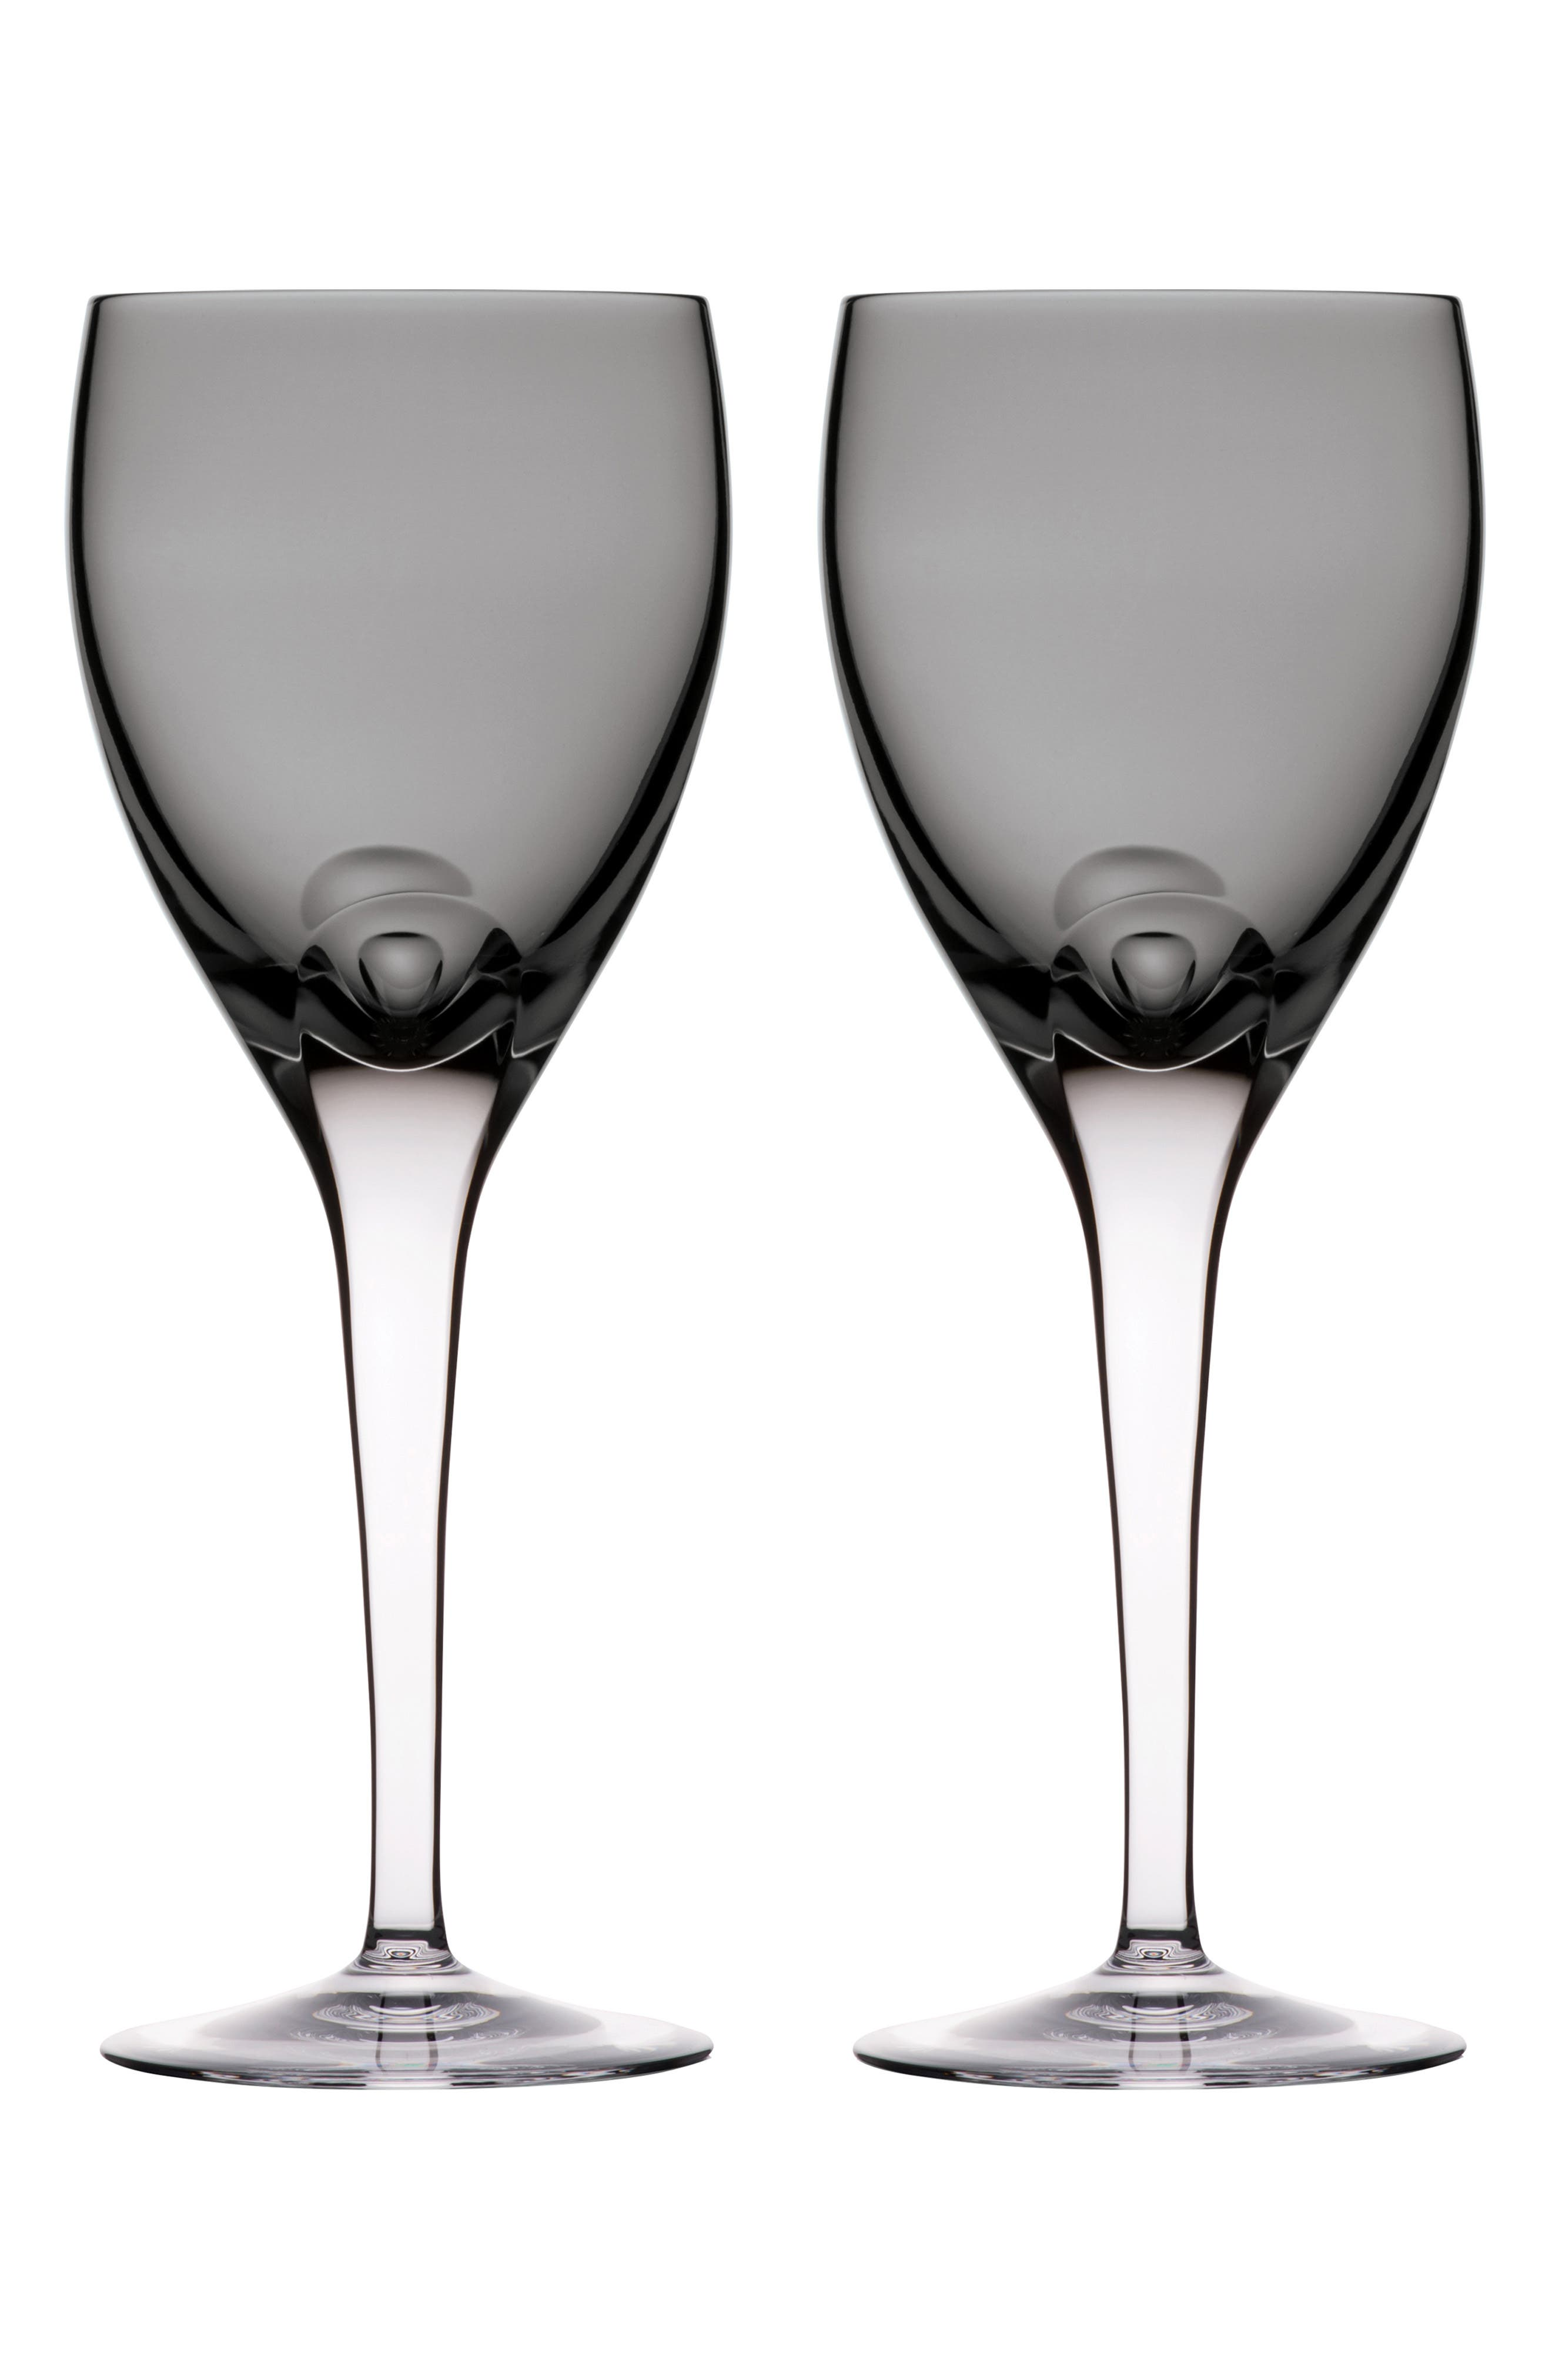 W Set of 2 Lead Crystal Wine Glasses,                             Main thumbnail 1, color,                             SHALE